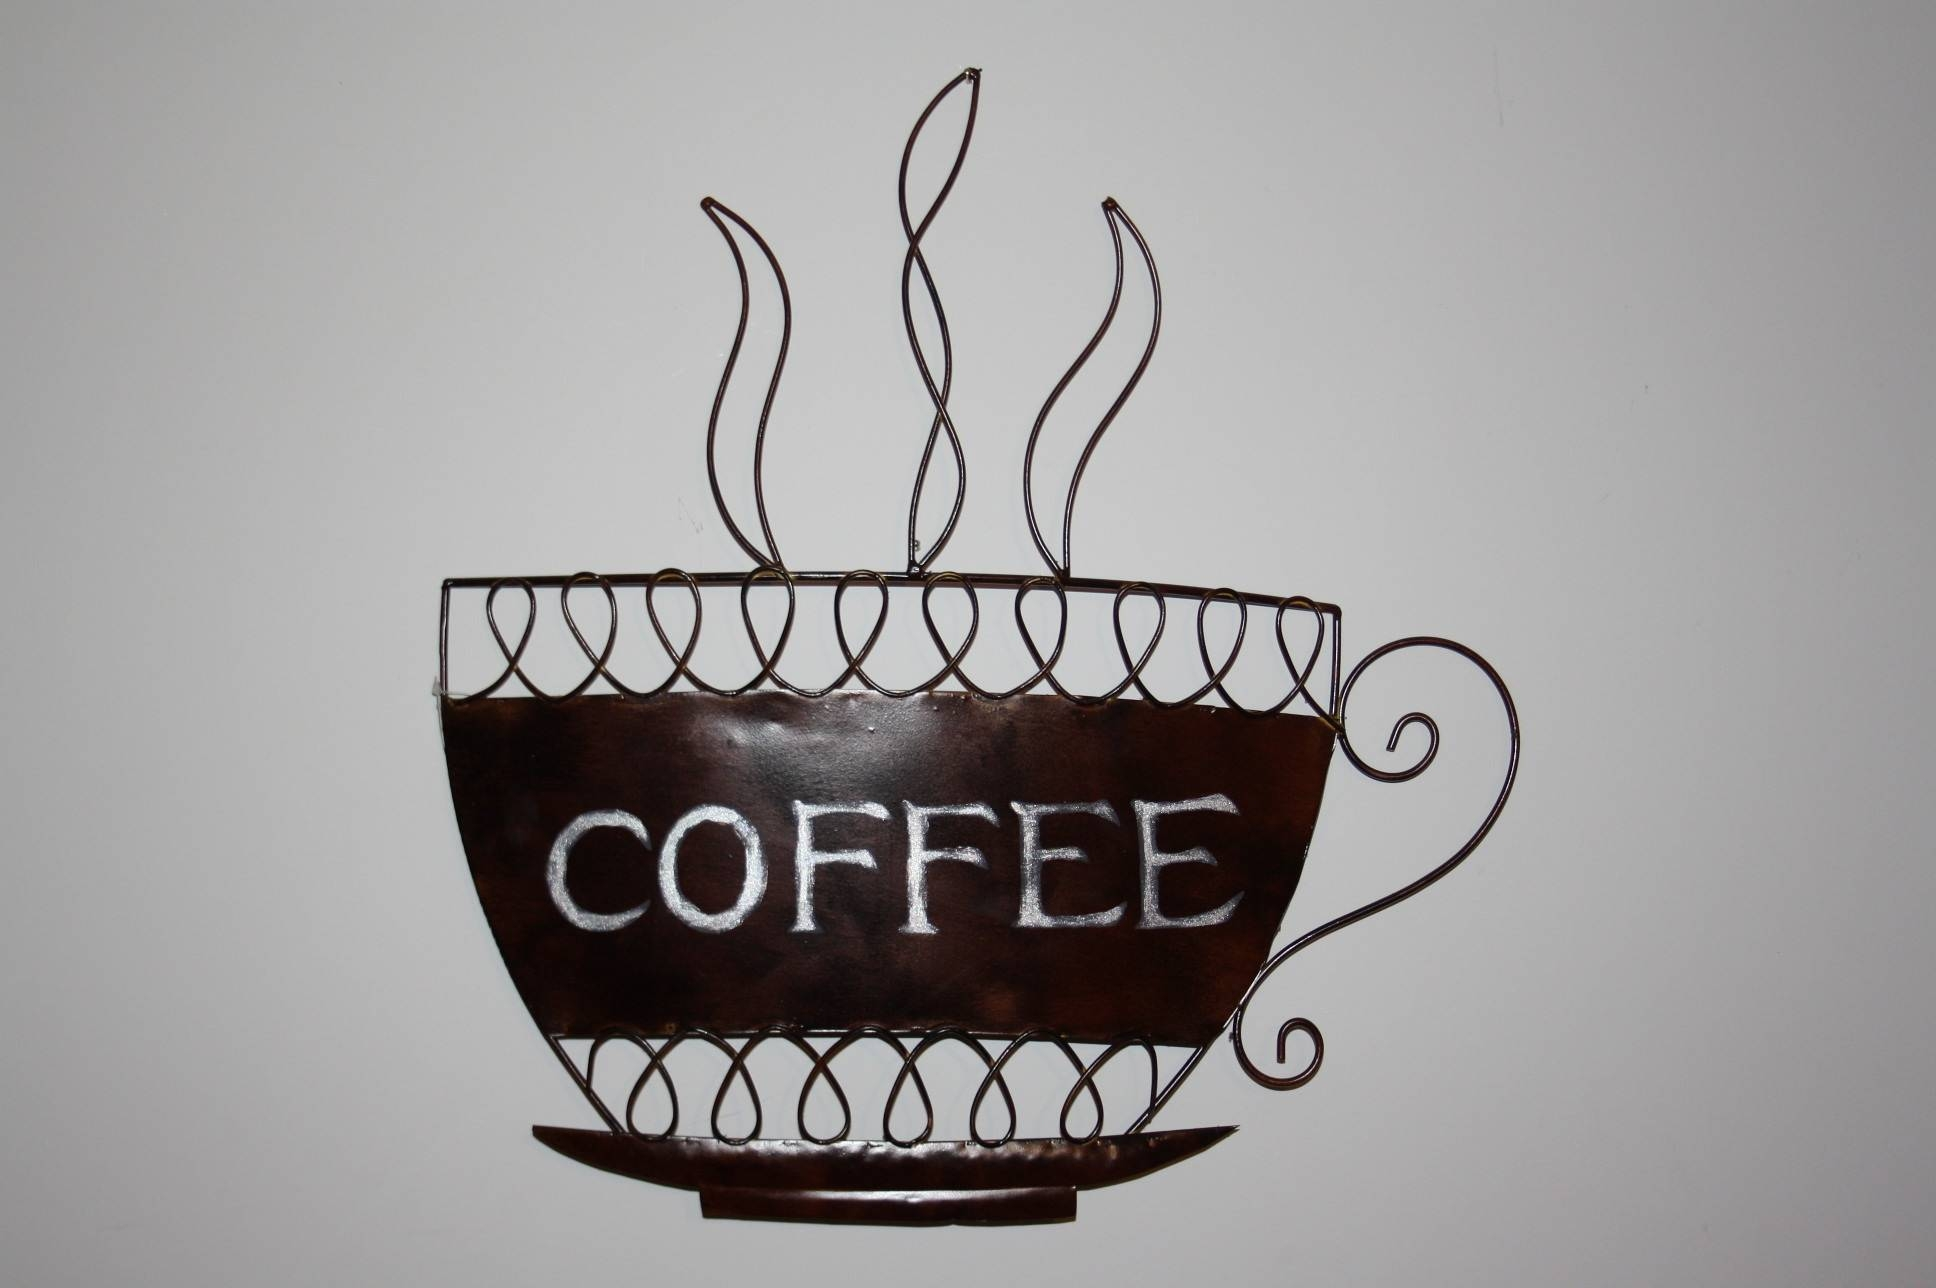 Coffee Cup Metal Wall Art Now With Free Uk P&p Intended For Most Popular Metal Coffee Cup Wall Art (View 6 of 20)